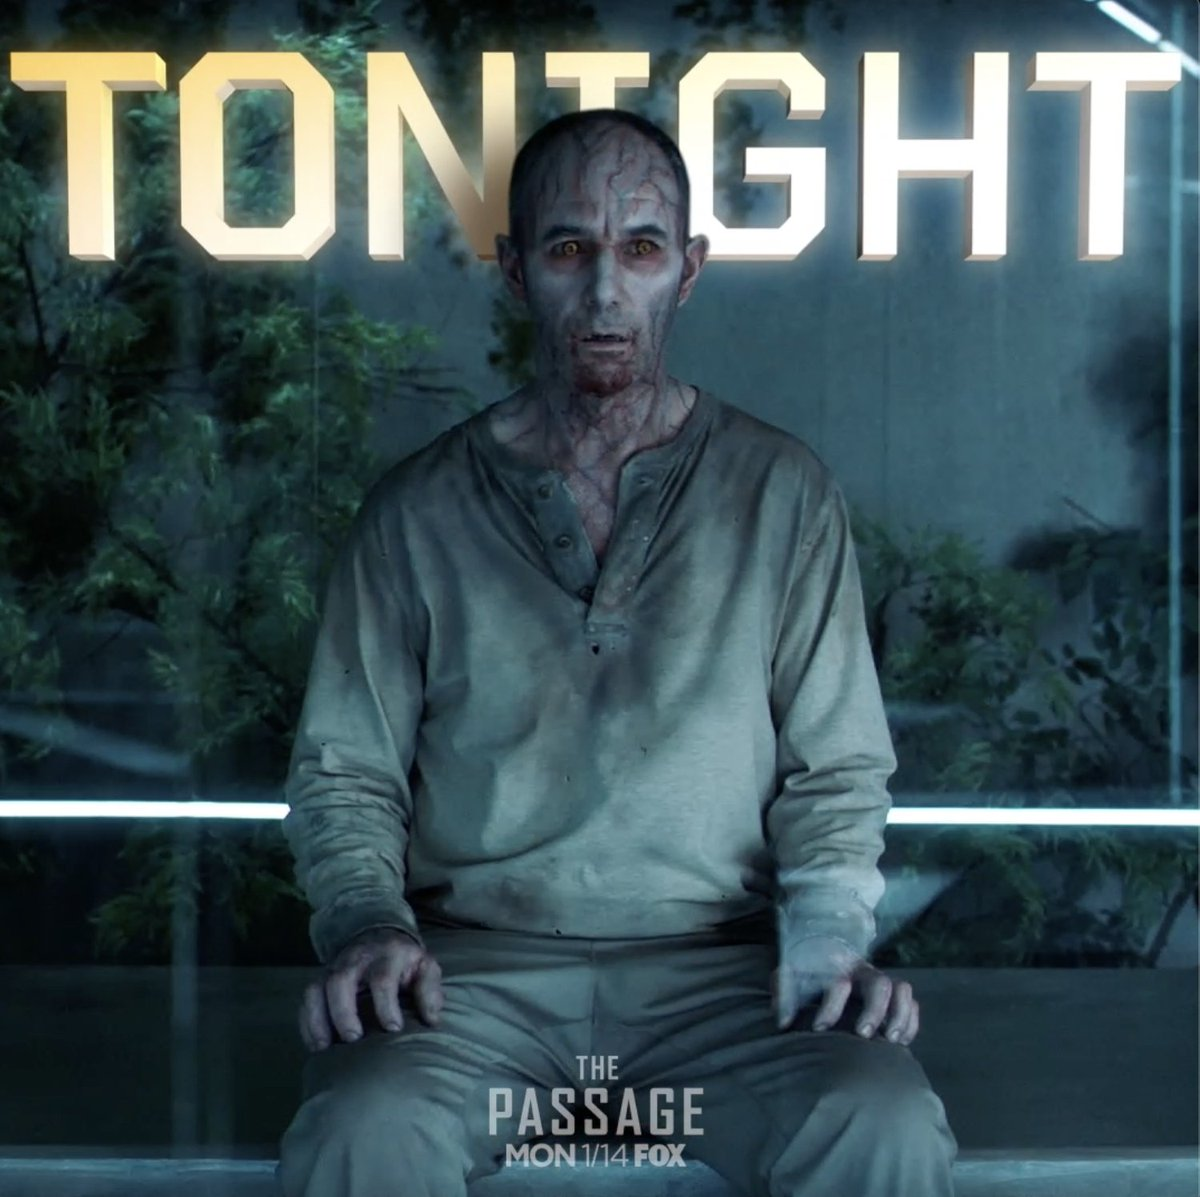 It all begins 𝐓𝐎𝐍𝐈𝐆𝐇𝐓...  RETWEET if you'll be watching #ThePassage at 9/8c.